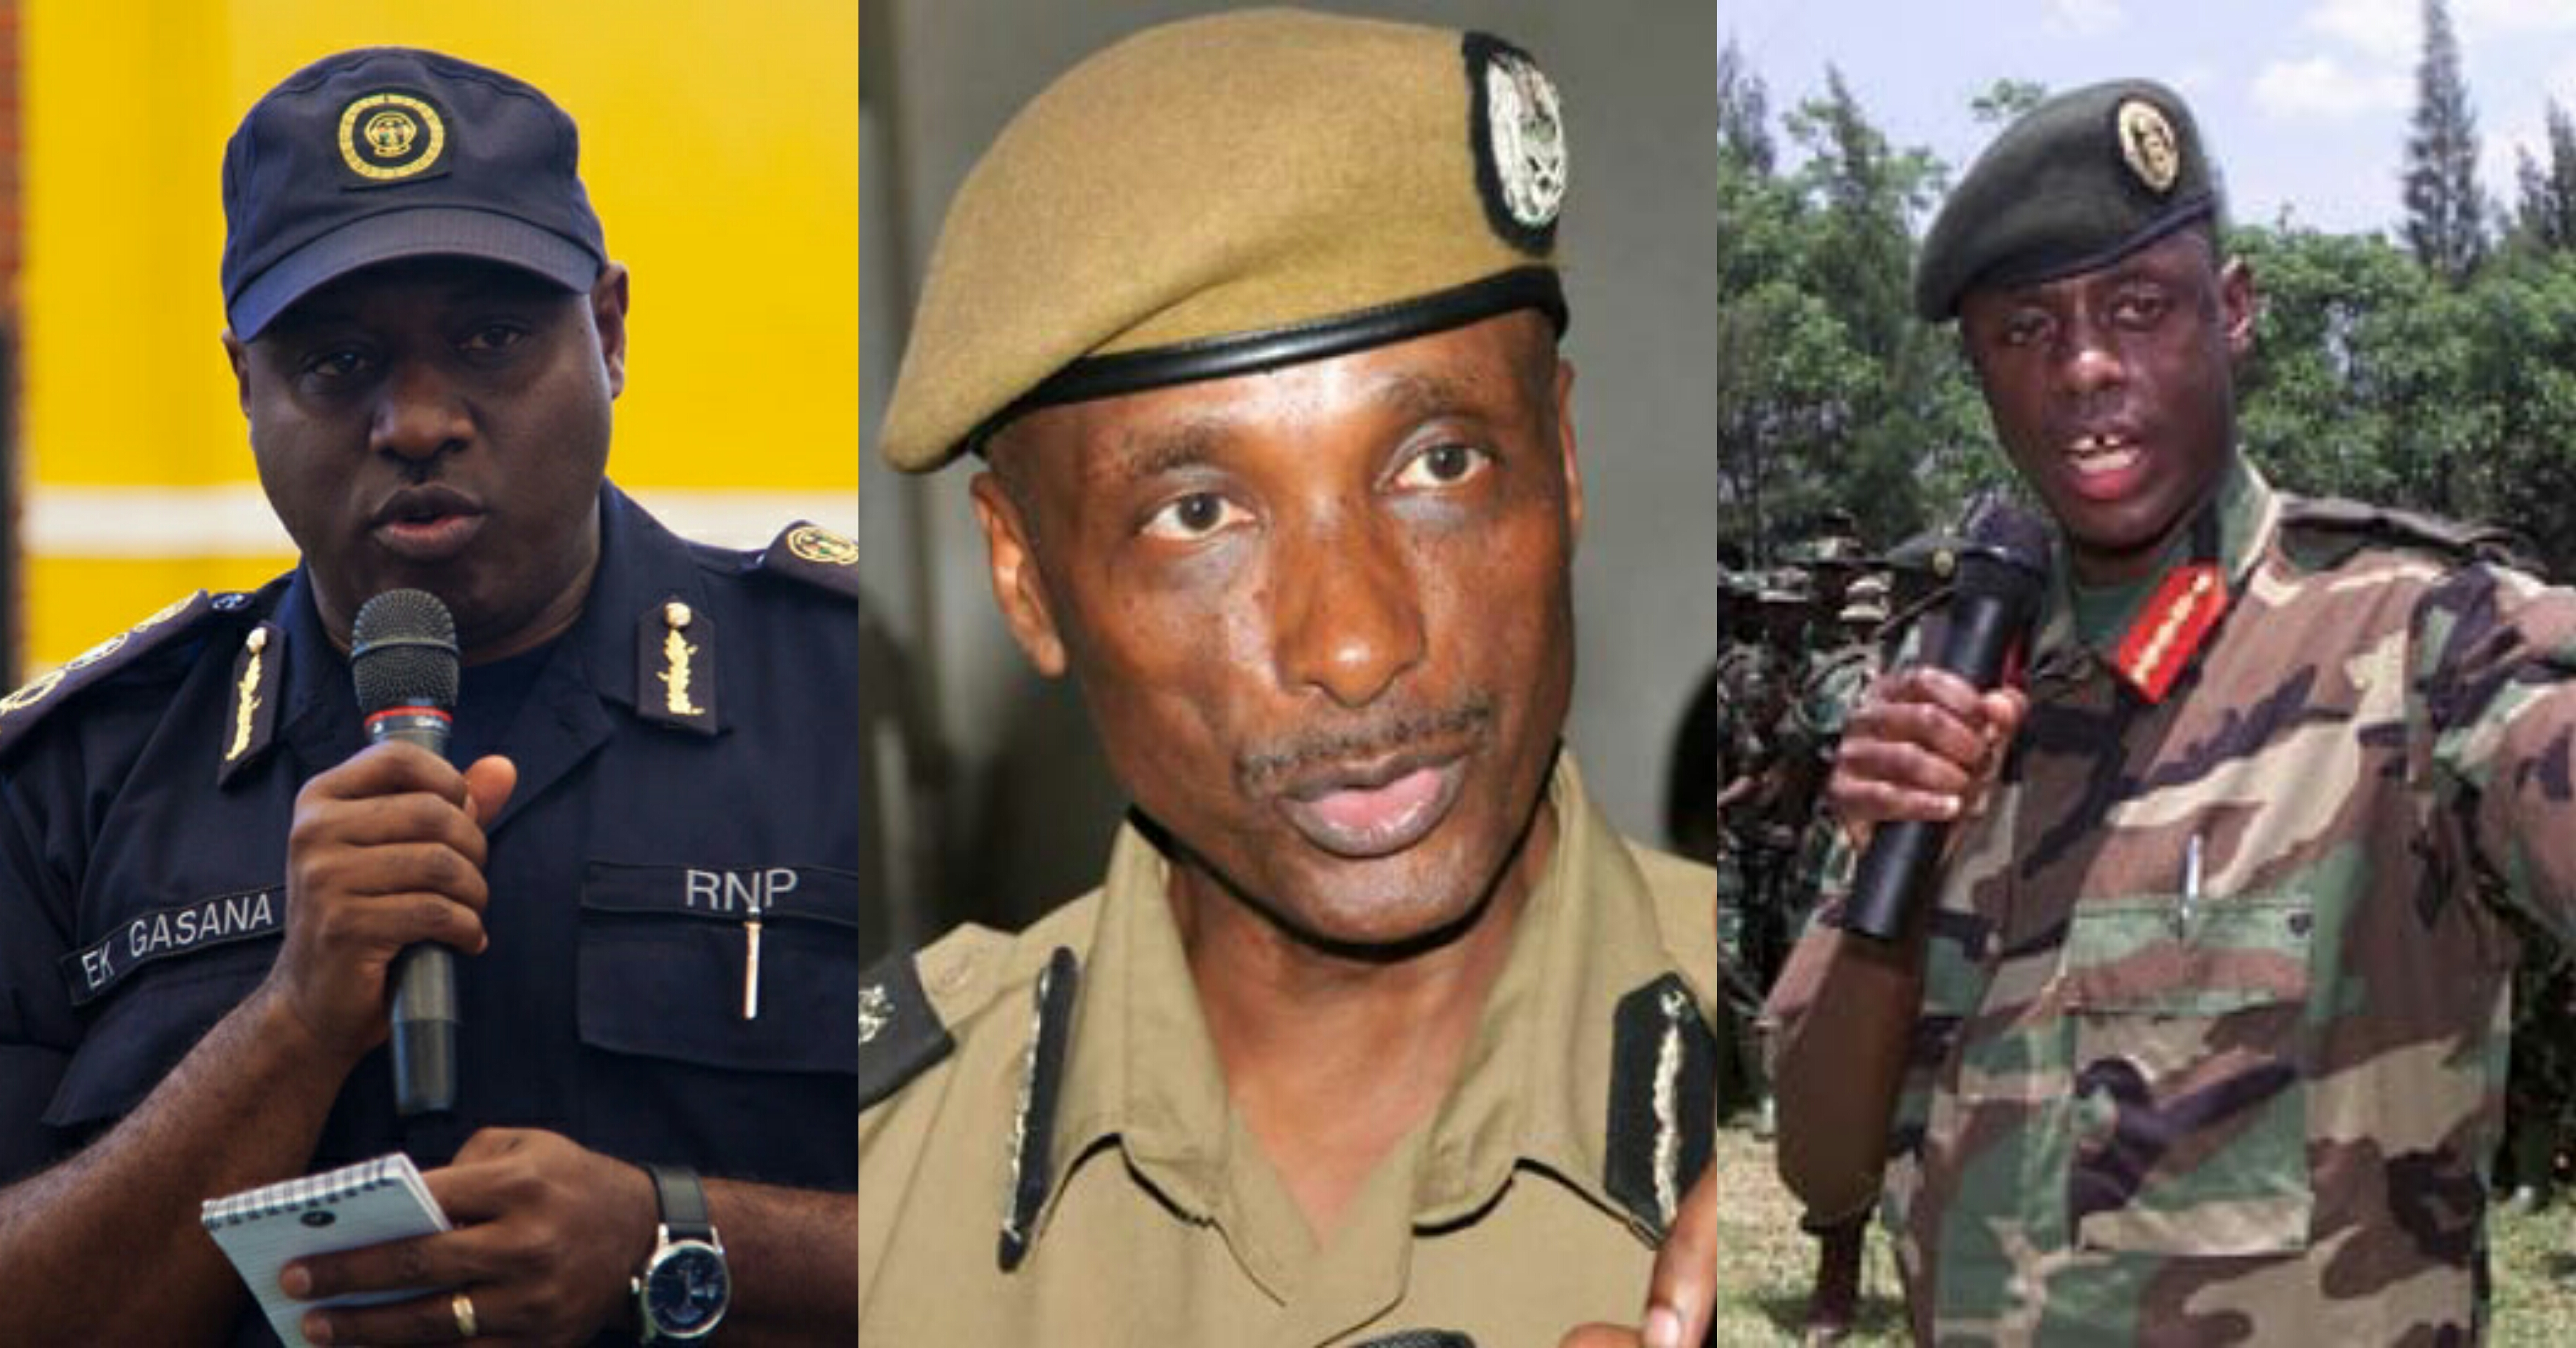 Rwanda Hatches Plan to Assassinate Top Security Officials